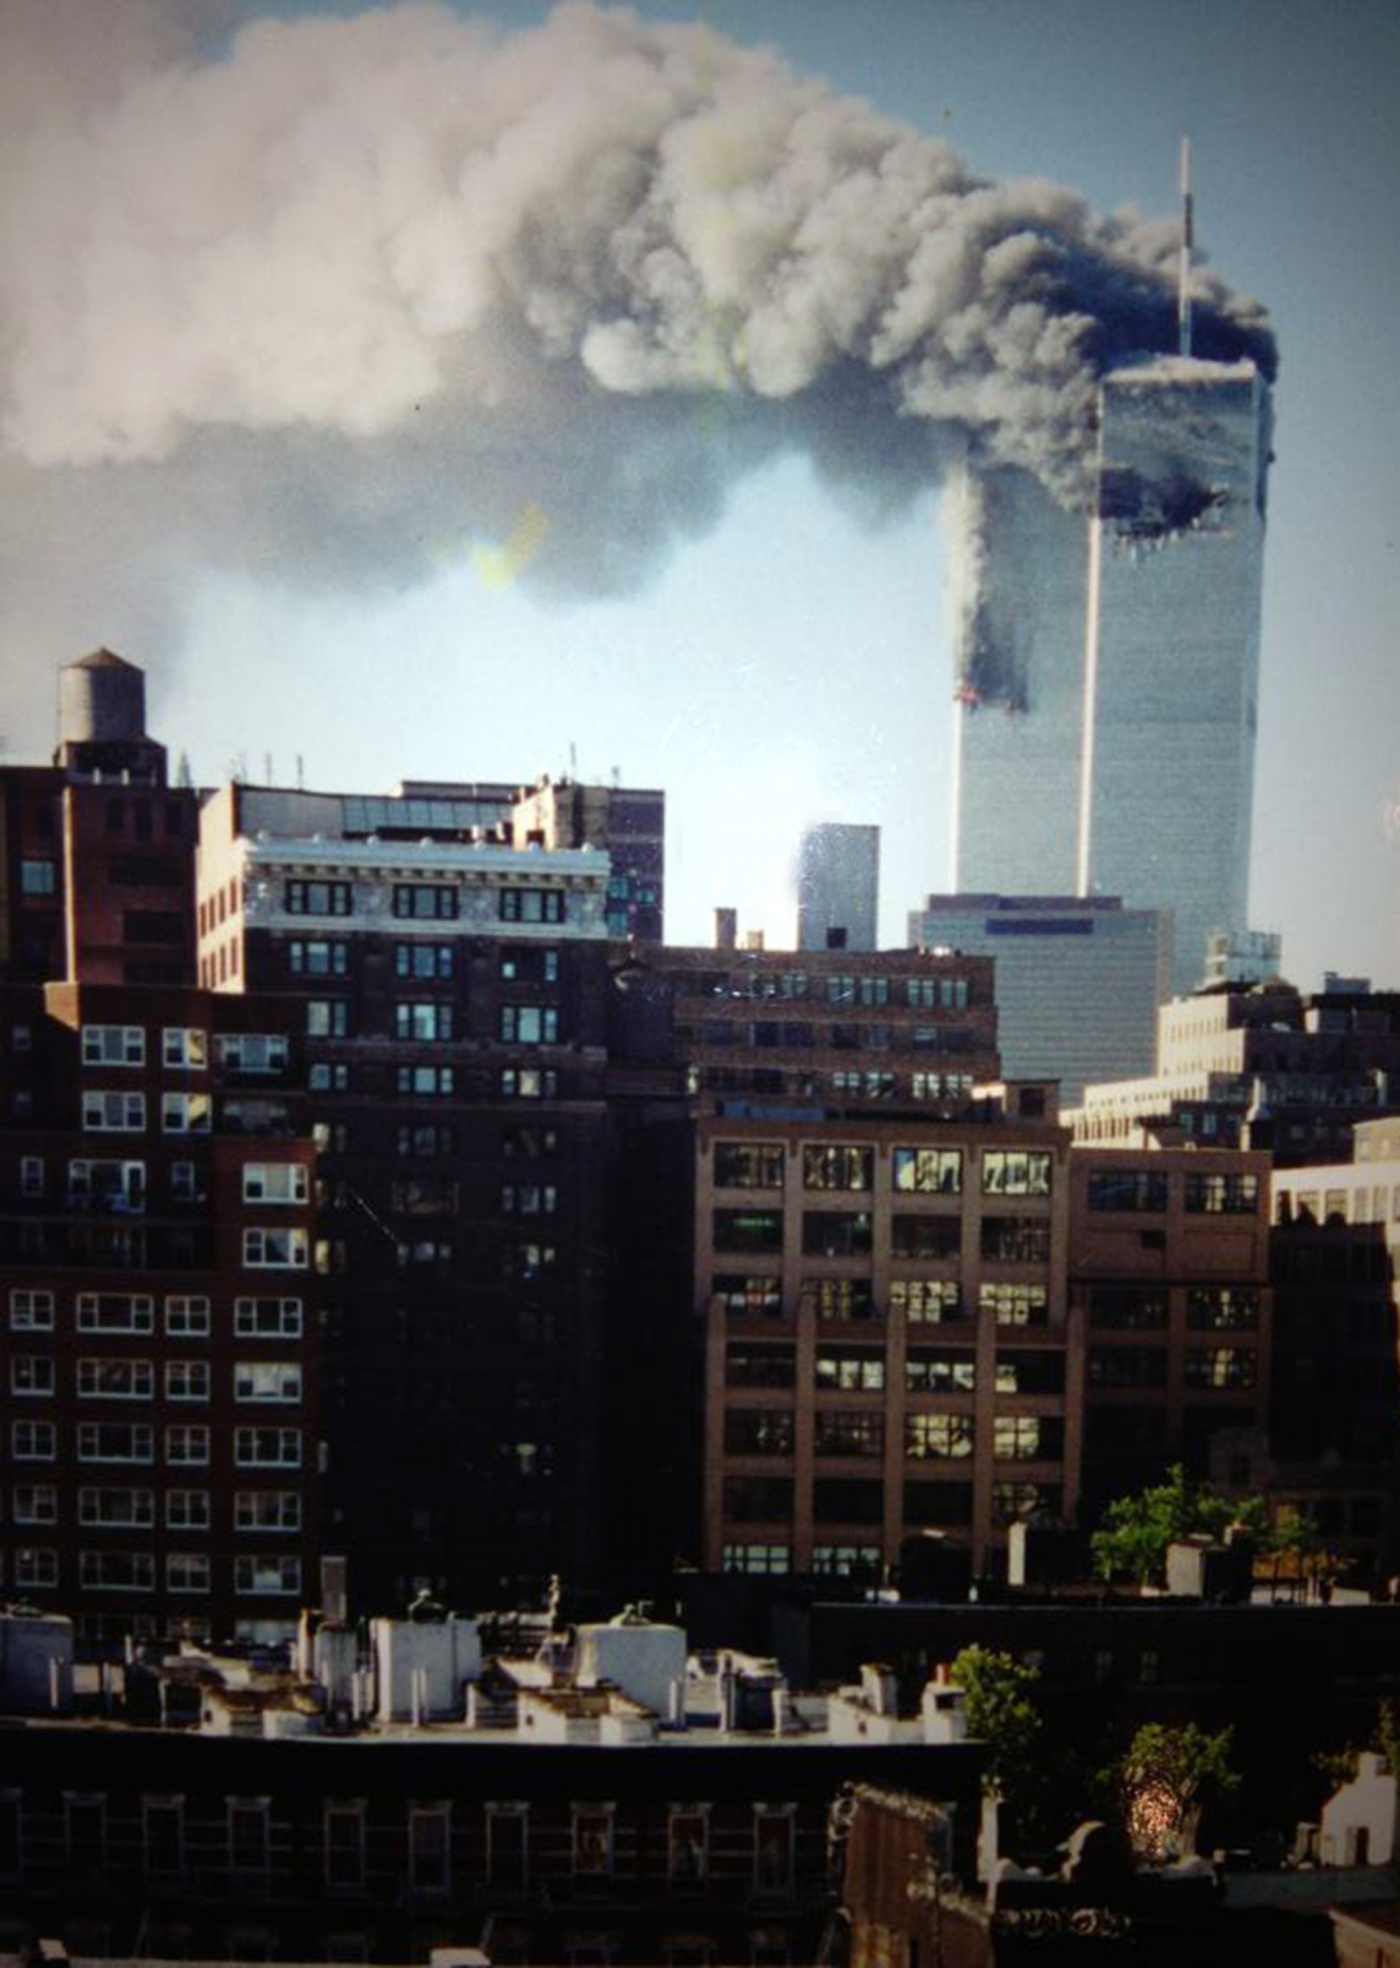 Image of the world trade center towers burning on 9/11